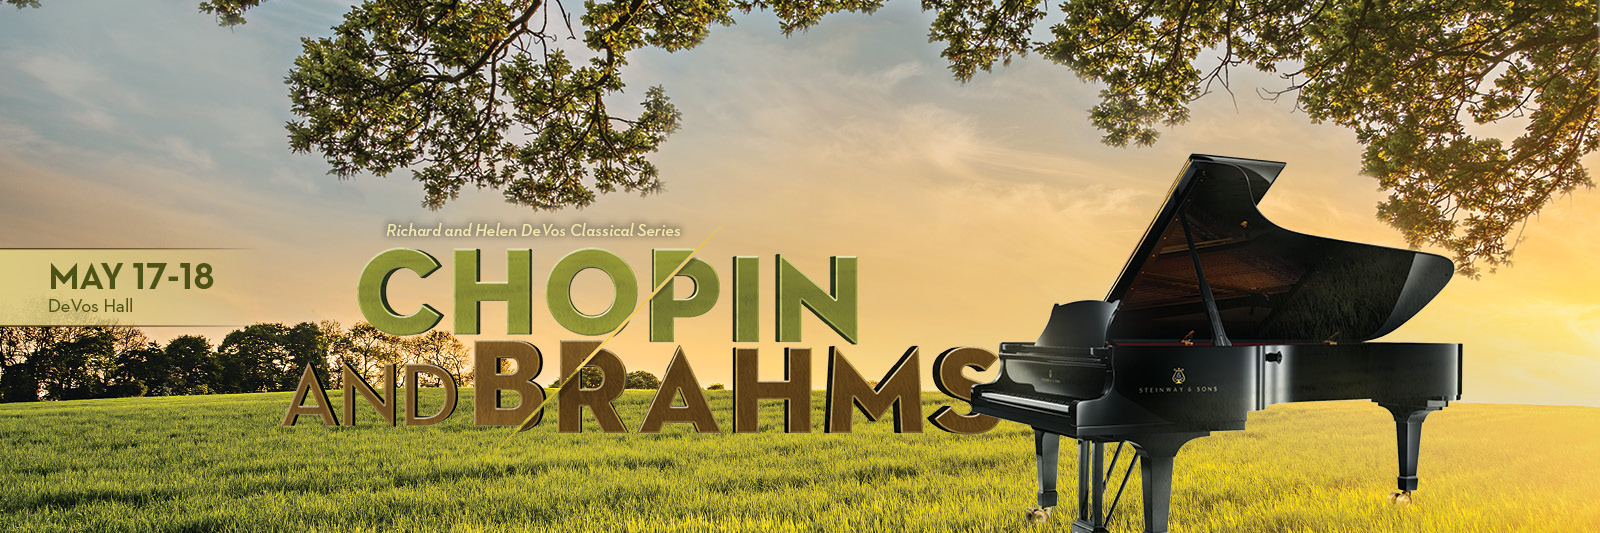 Chopin and Brahms